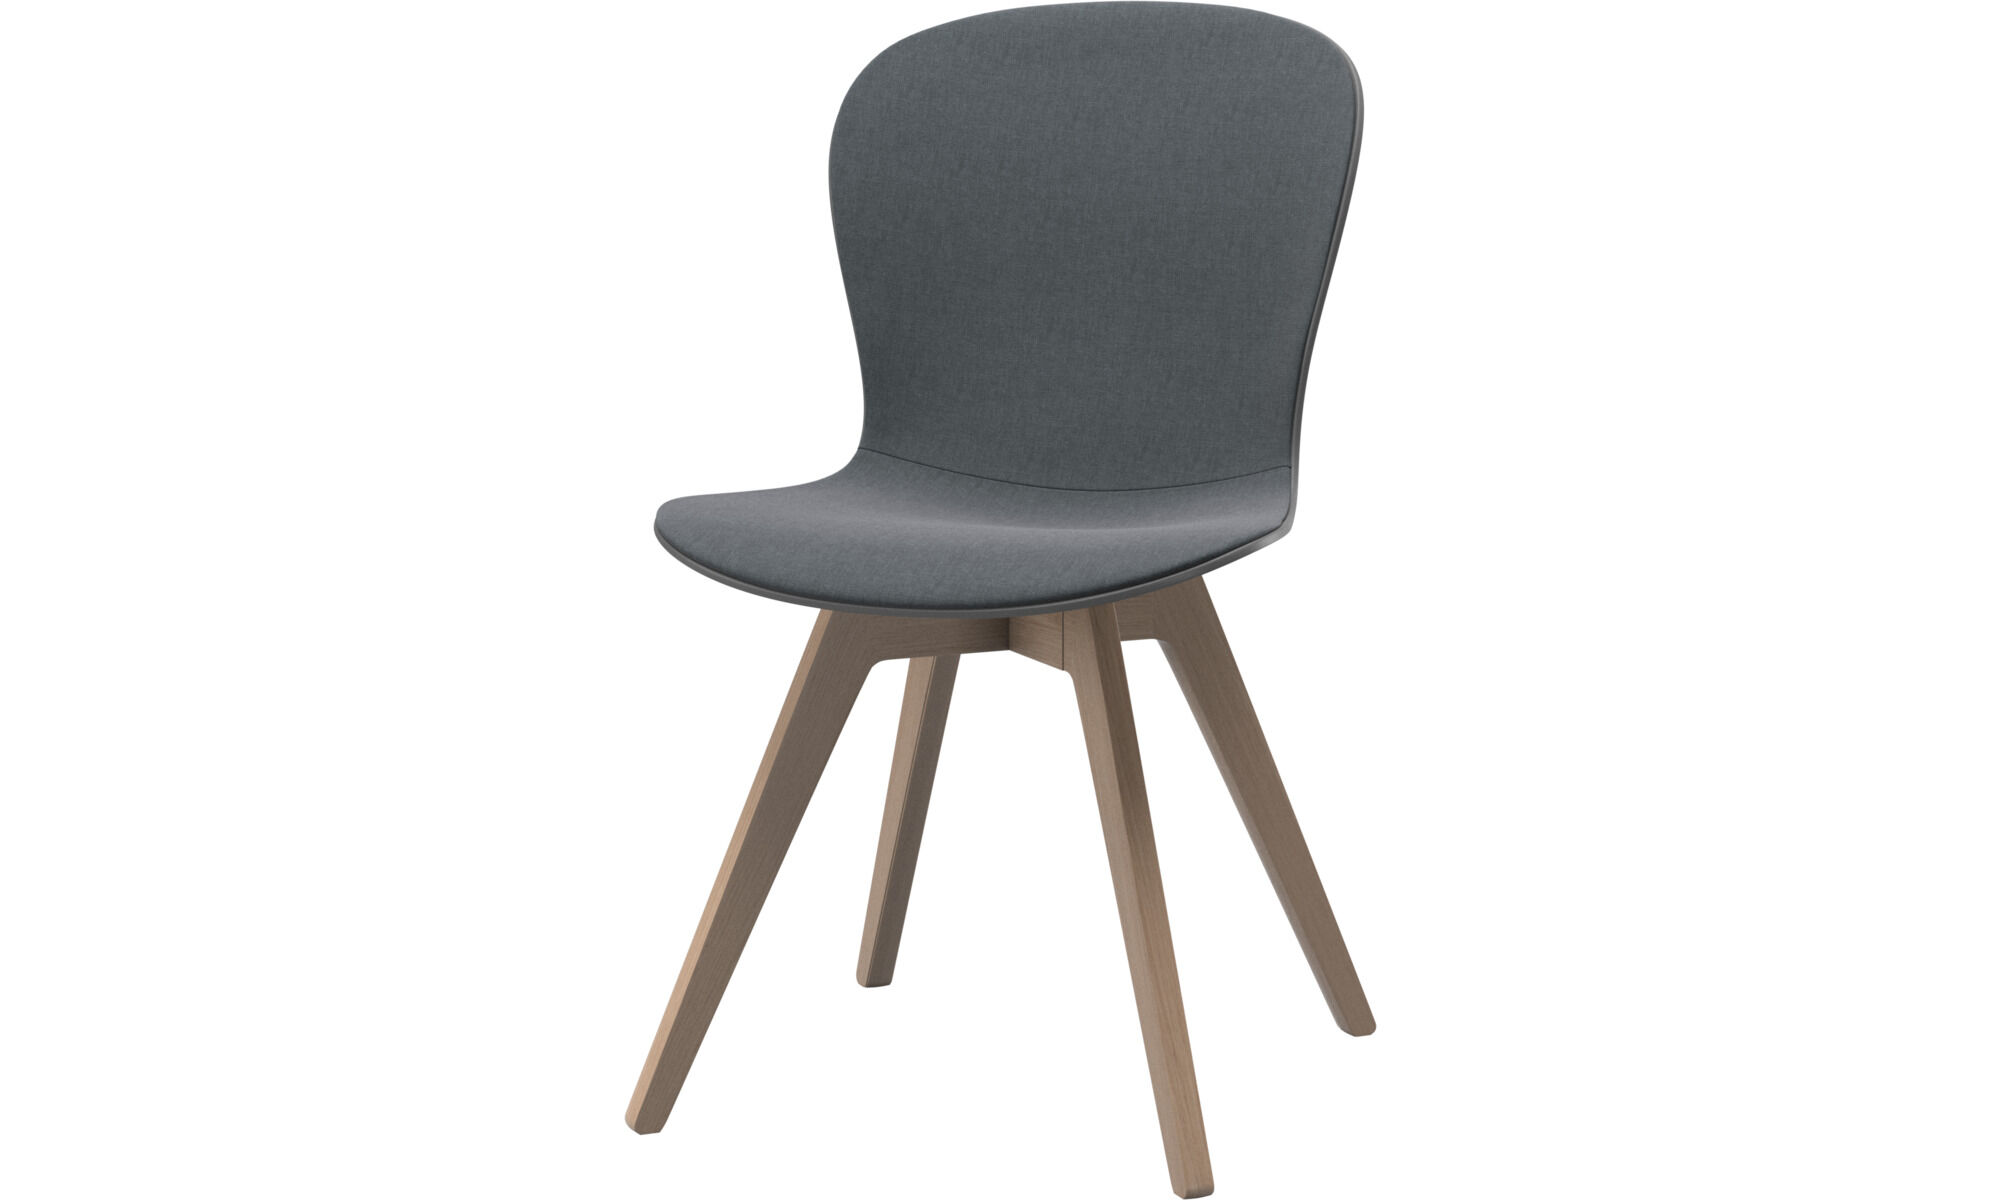 ADELAIDE CHAIR - partly upholstered seat - save 60%